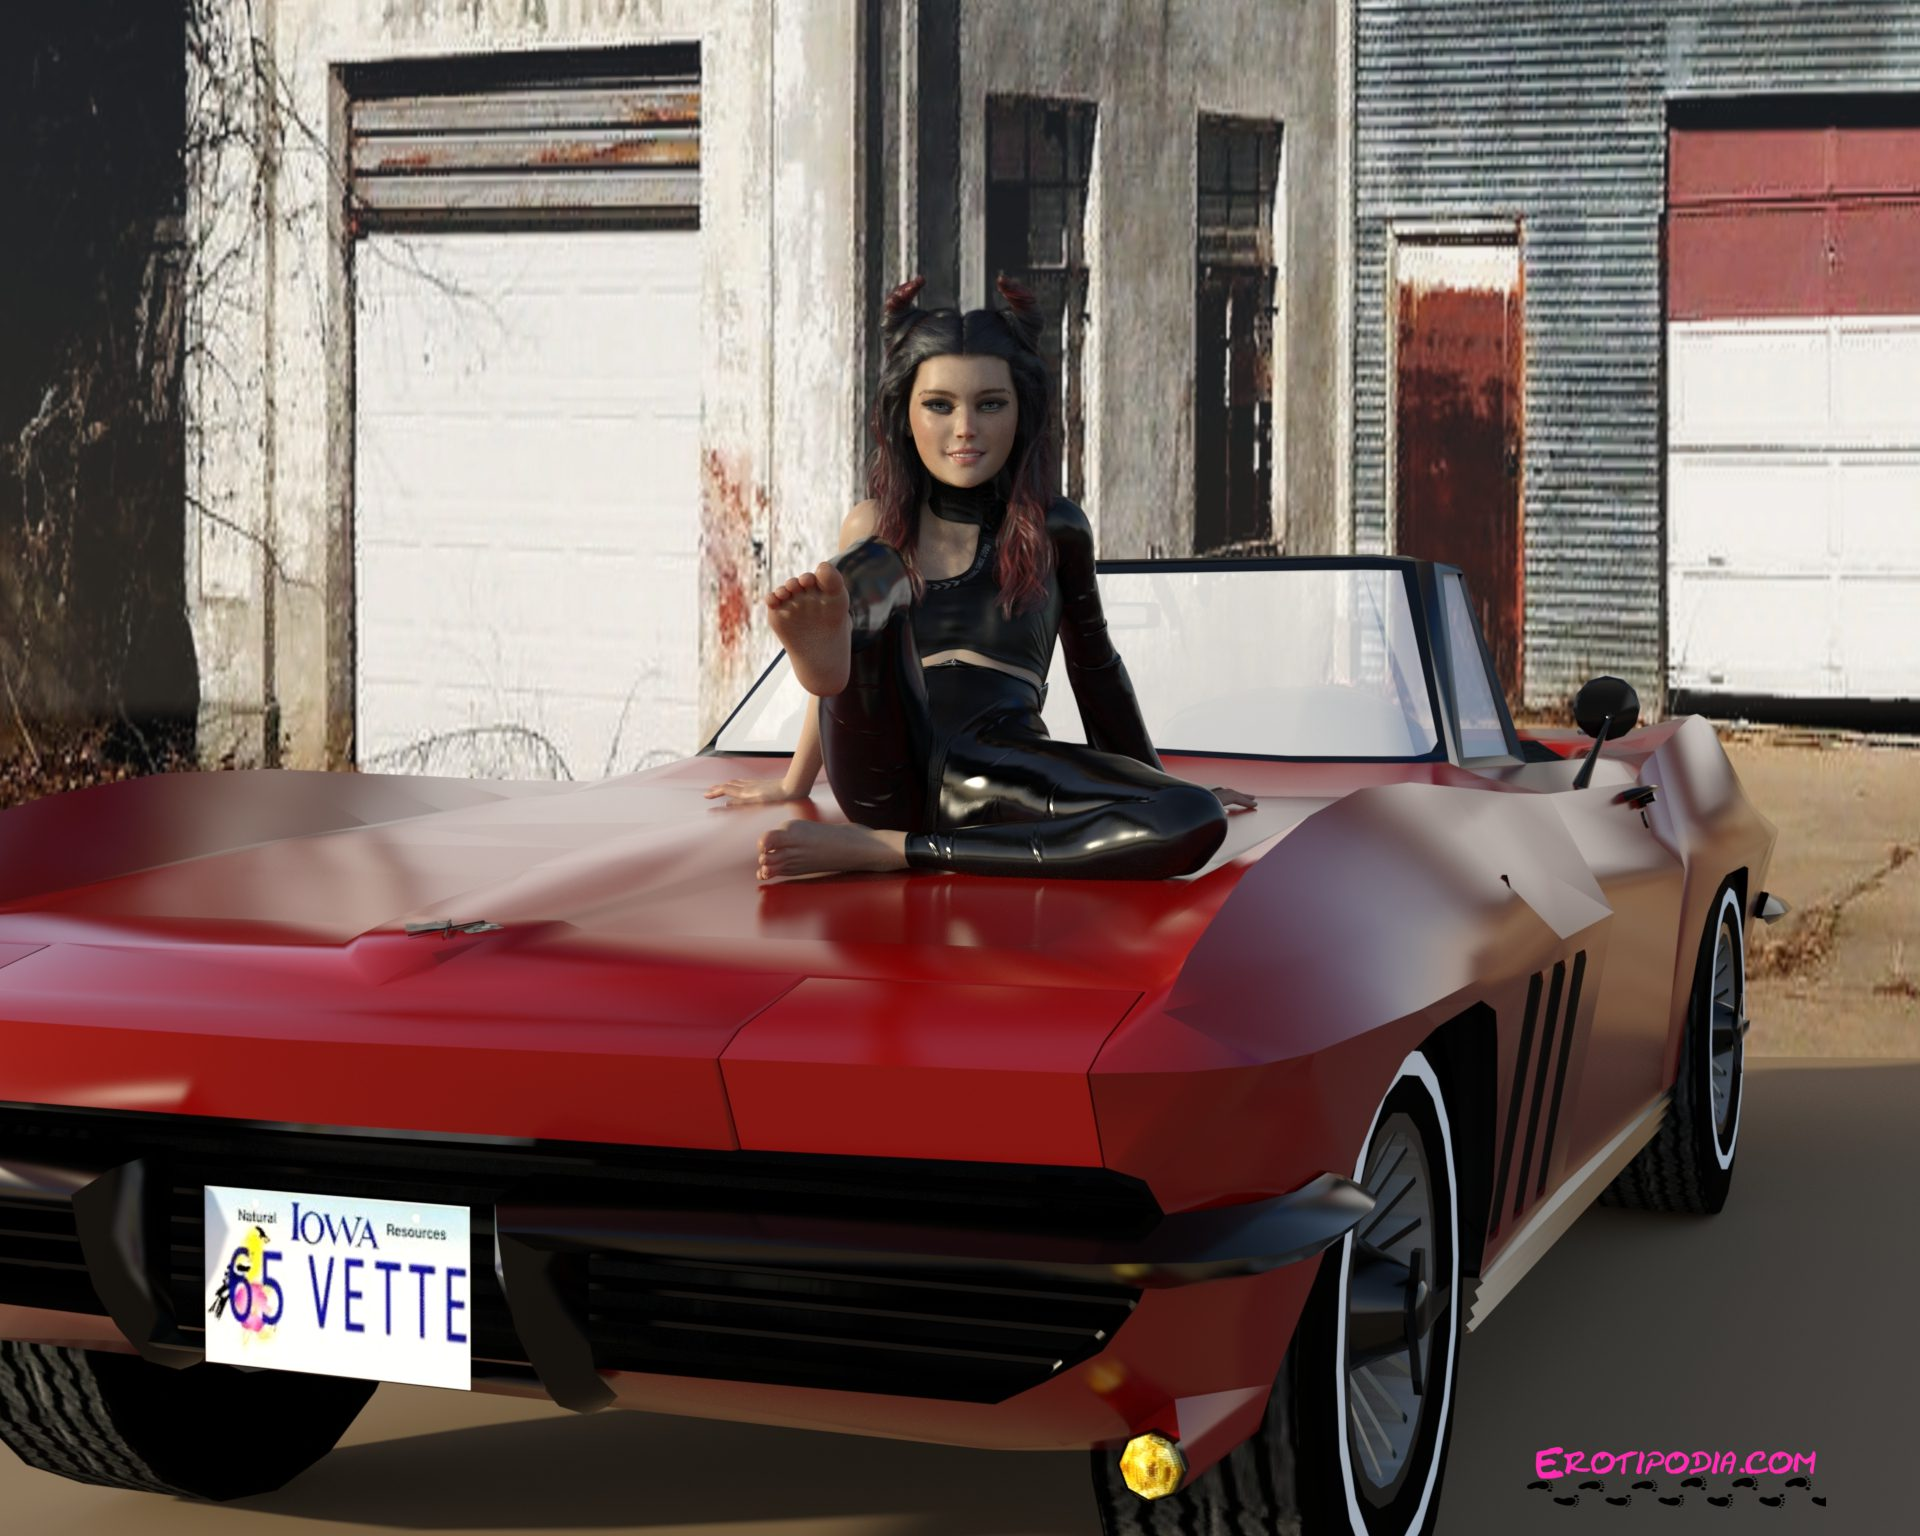 Barefoot girl sitting on the hood of a classic corvette